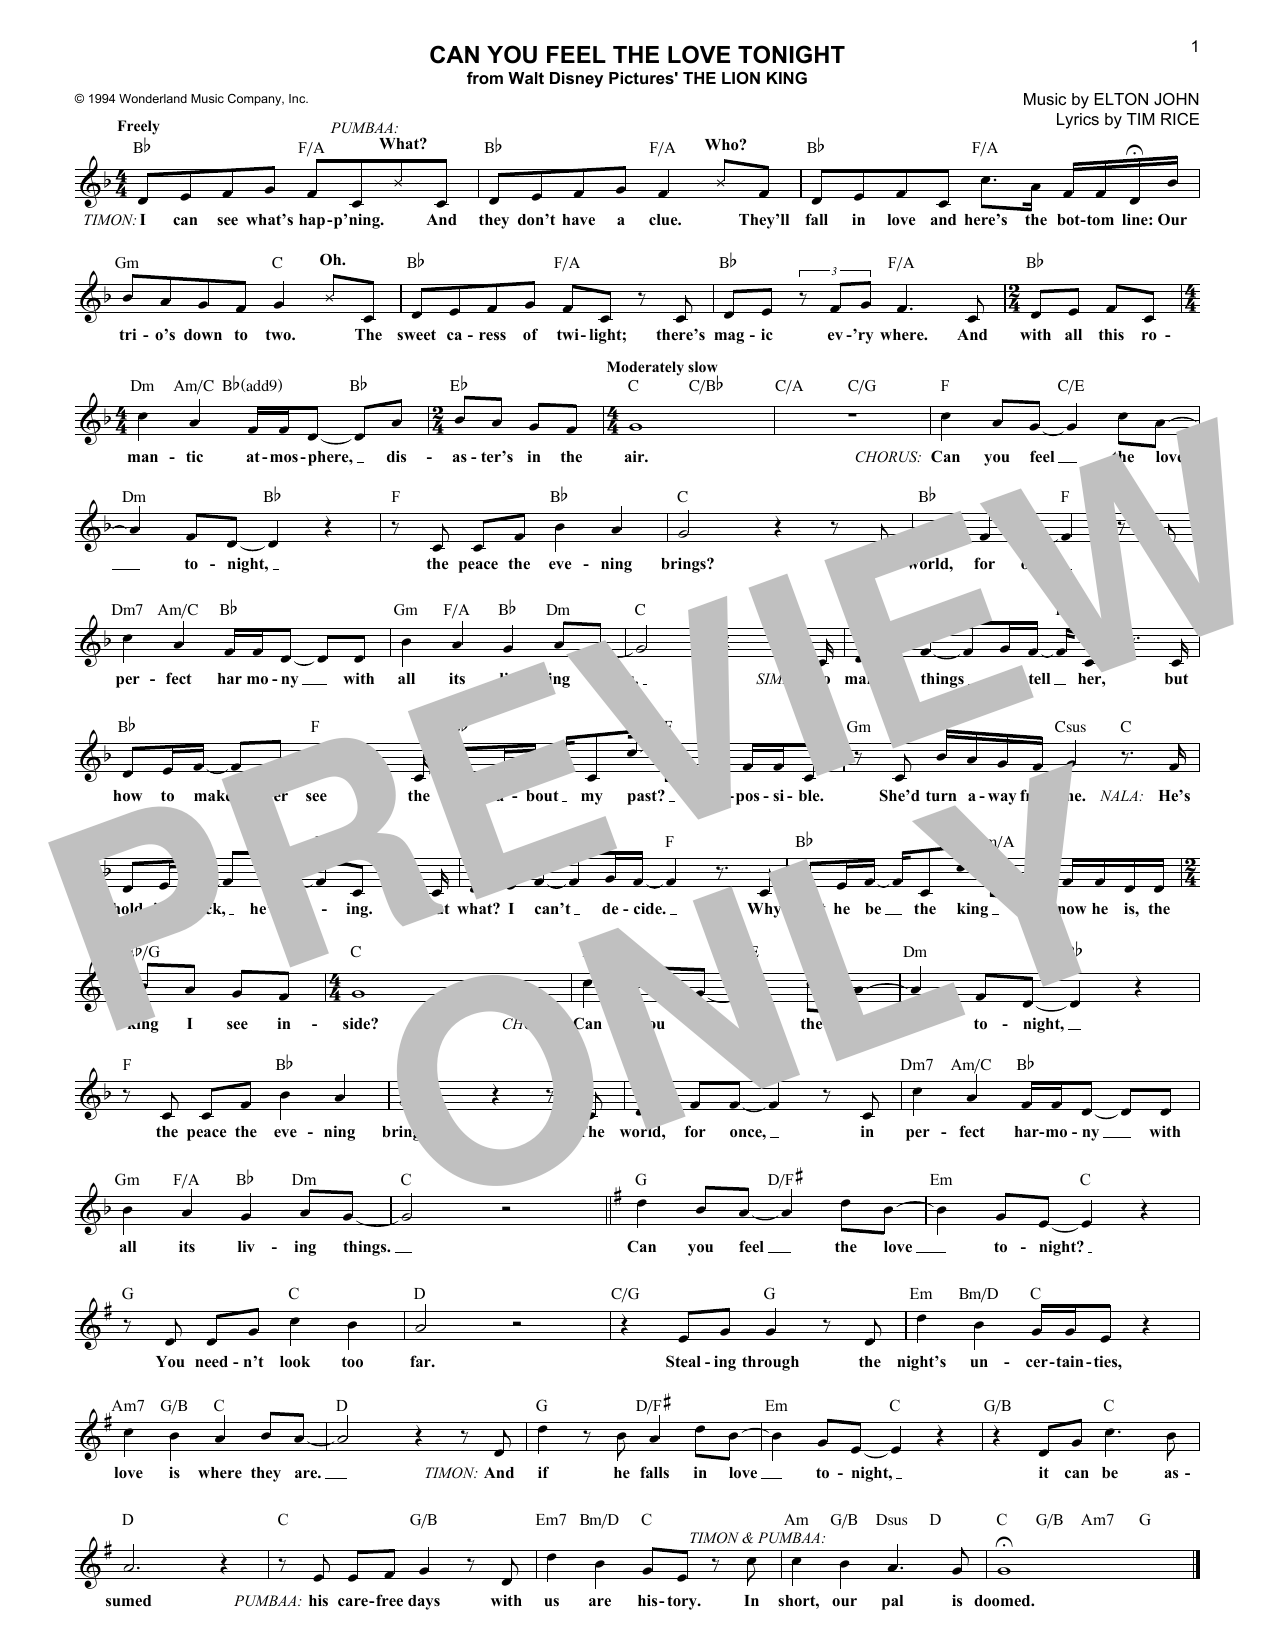 Can you feel the love tonight chords by elton john melody line can you feel the love tonight sheet music hexwebz Gallery